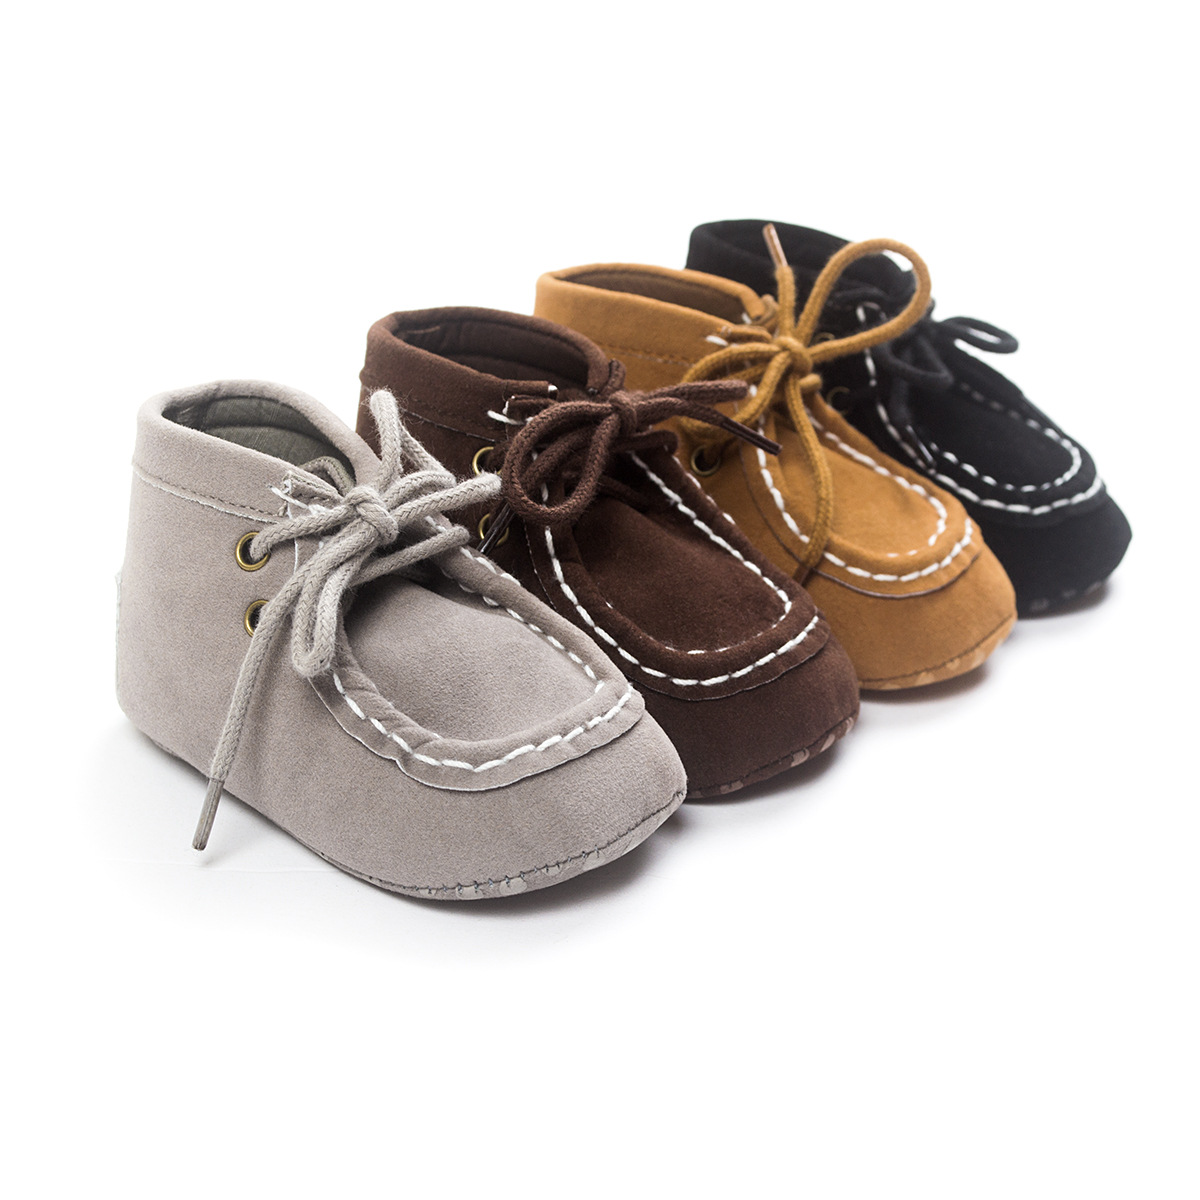 ROMIRUS 2018 Top Quality Baby Boys Girls Casual Shoes Soft Sole Indoor Toddler Shoes First Walkers Baby Moccasins